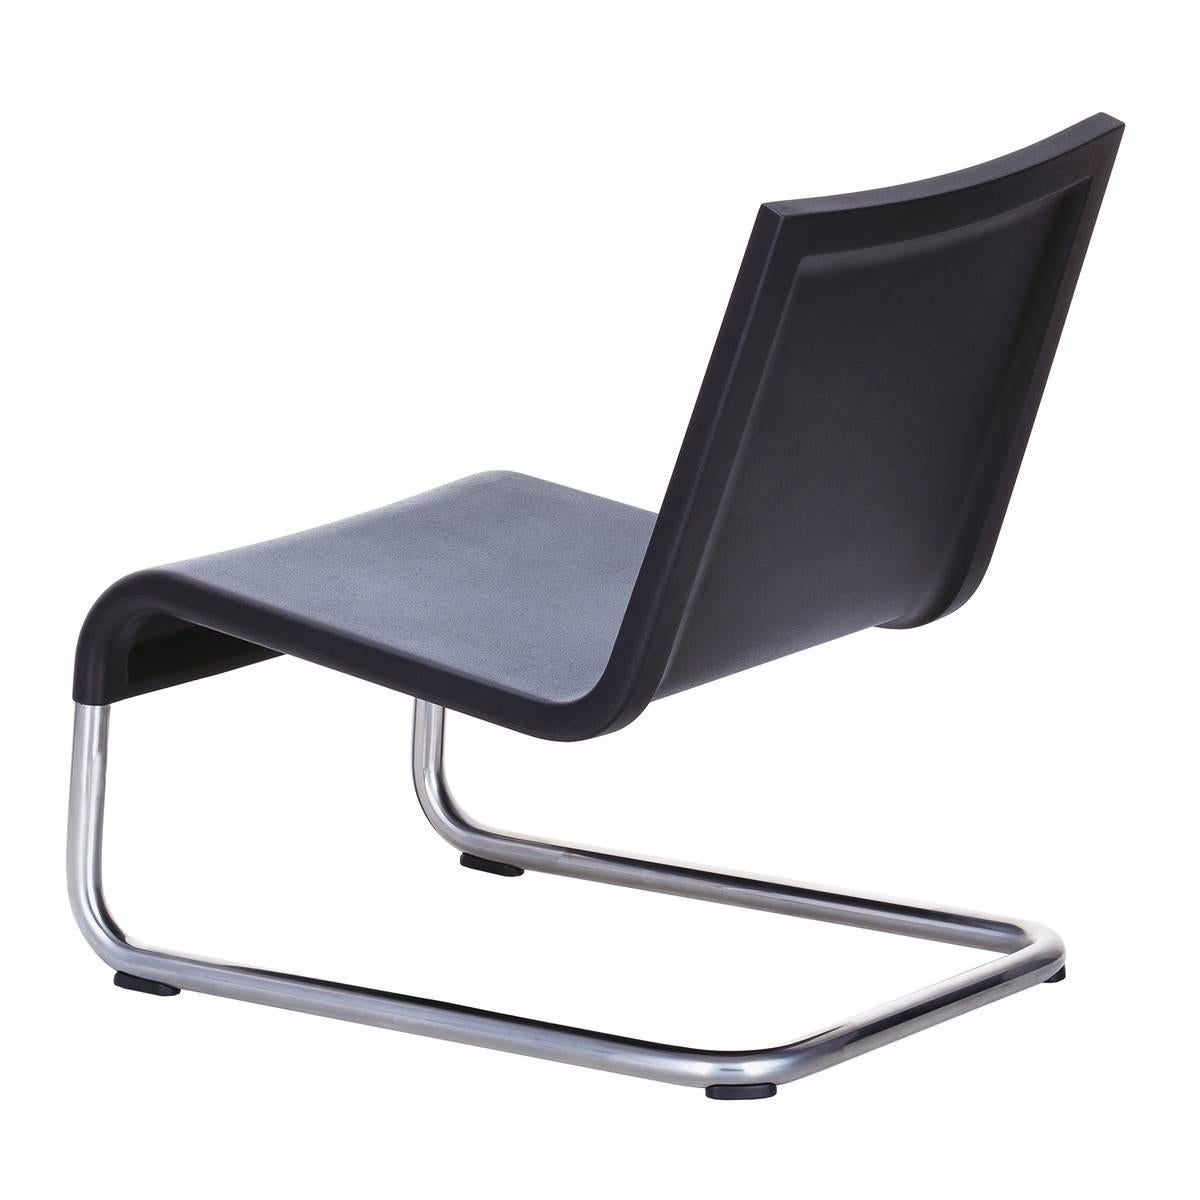 Designed By Maarten Van Severen For Vitra In 2005, The .06 Lounge Chair  Successfully